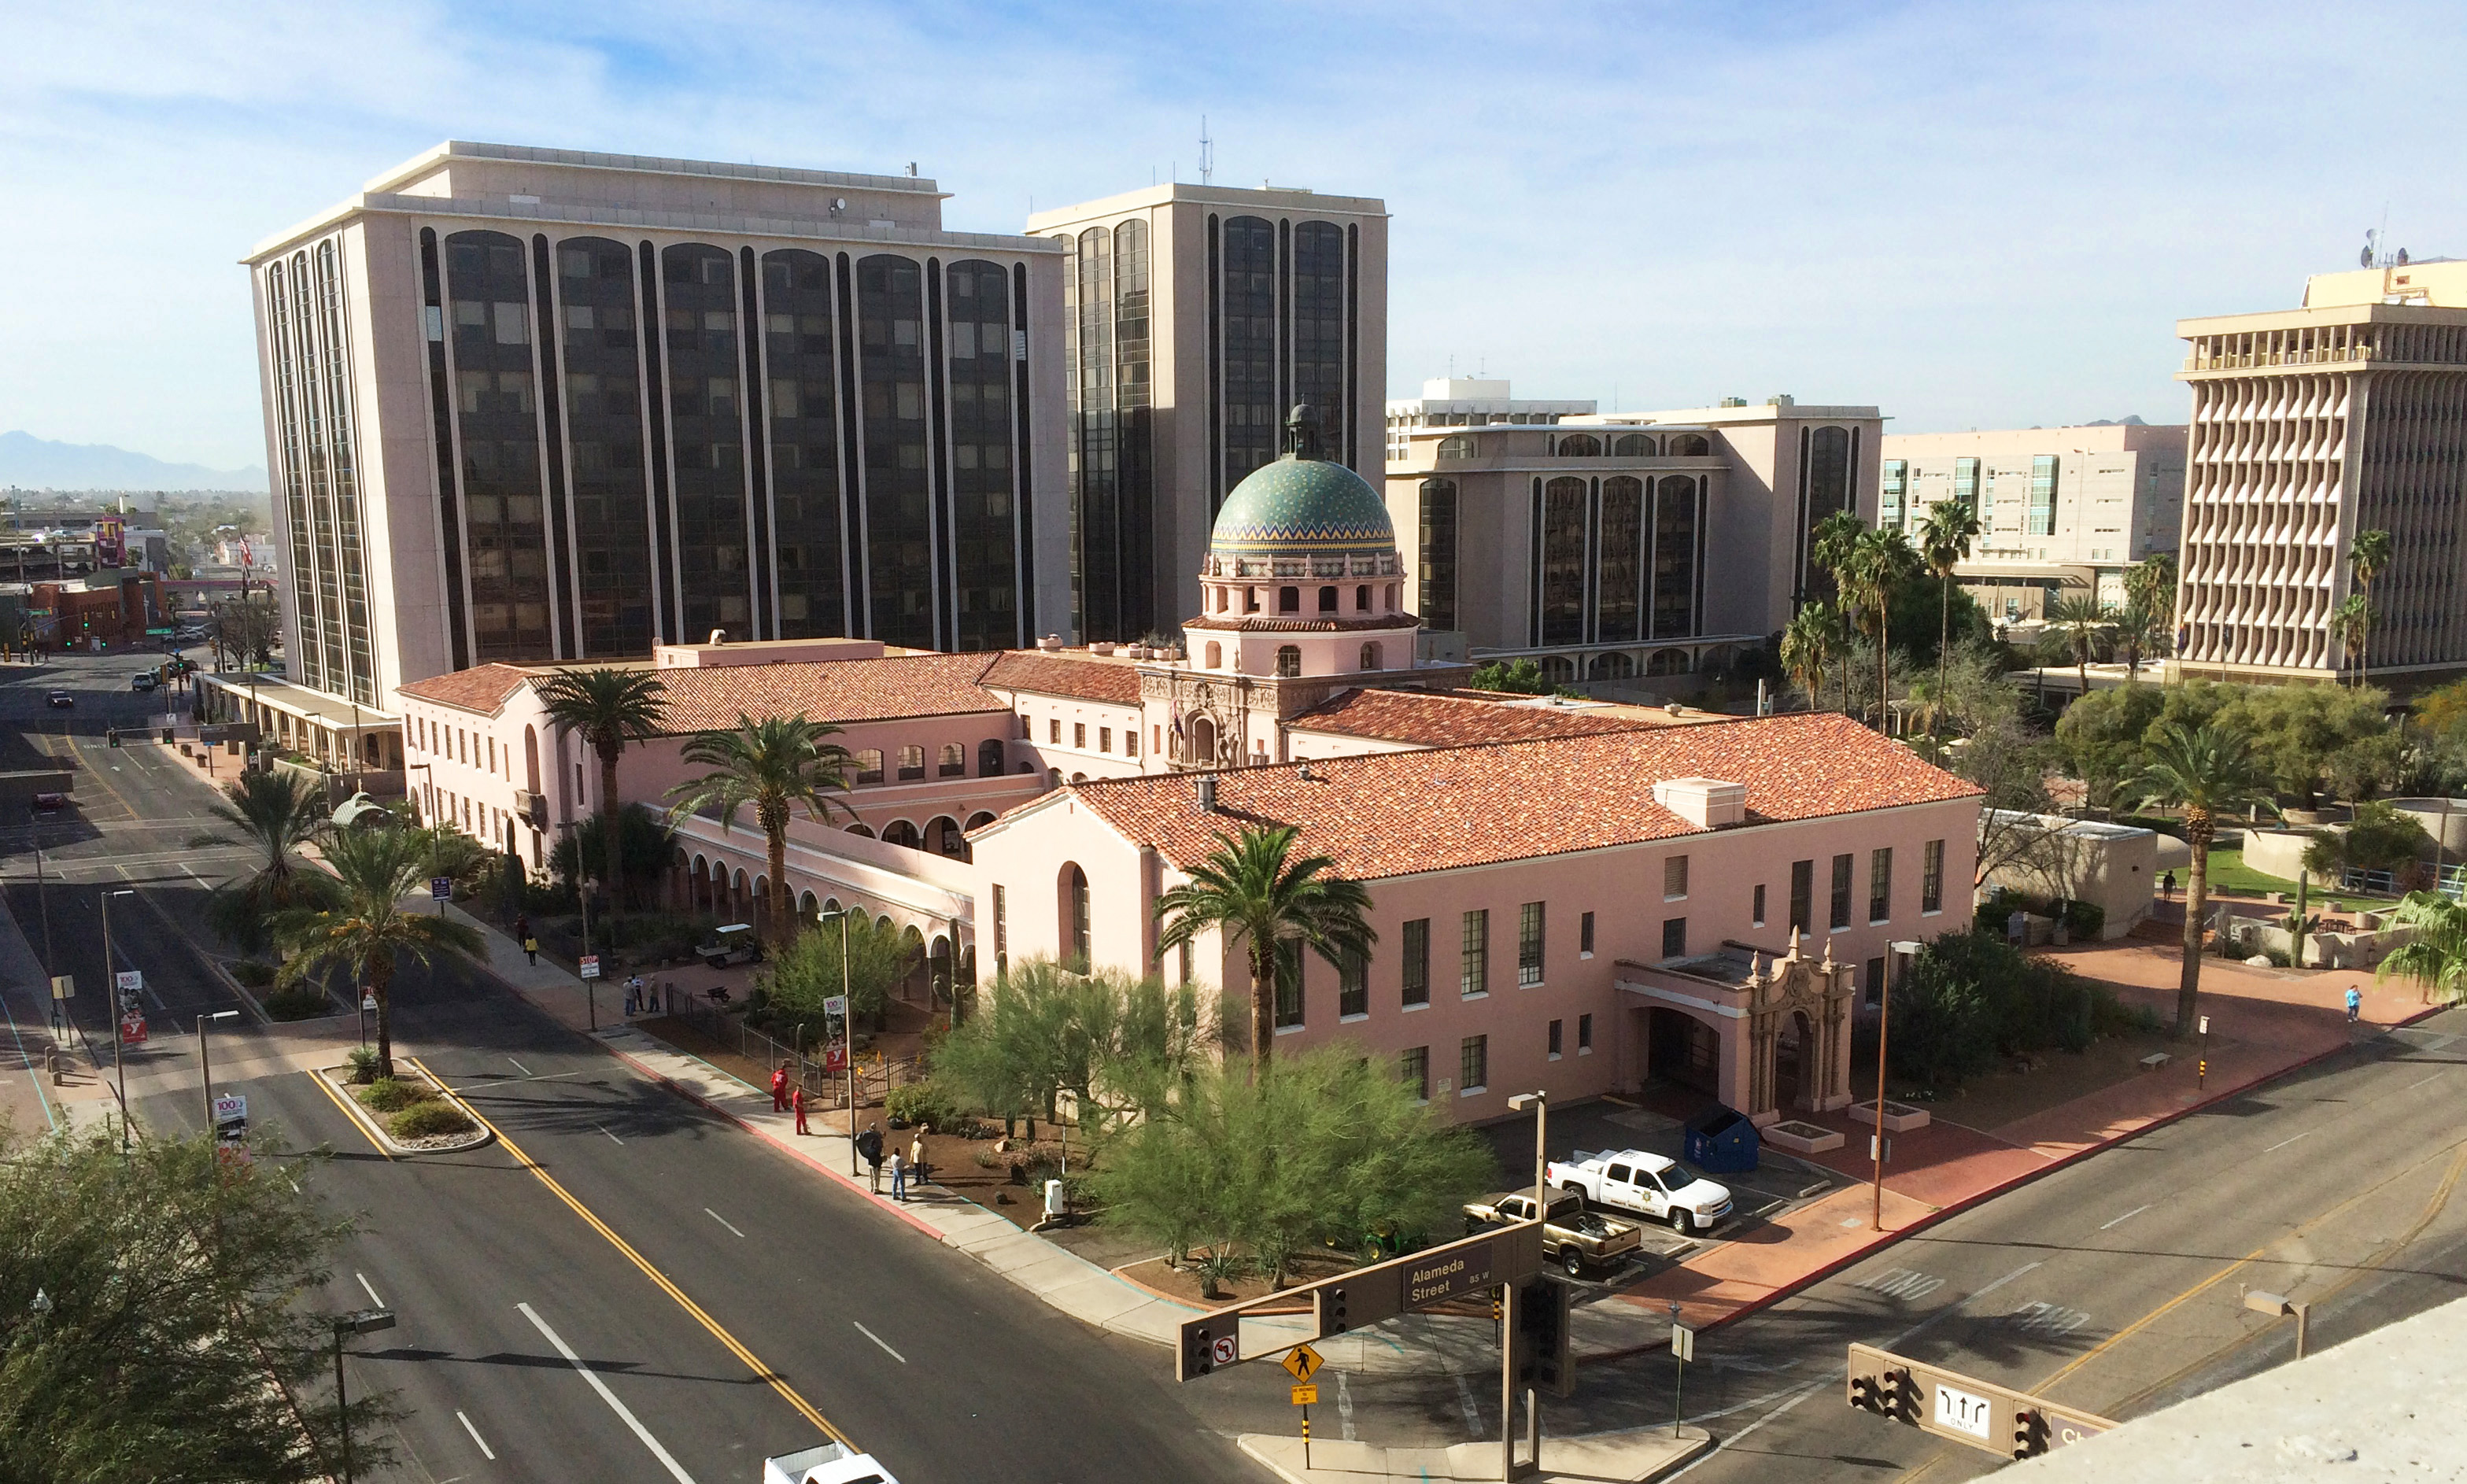 Pima County Courthouse Street View